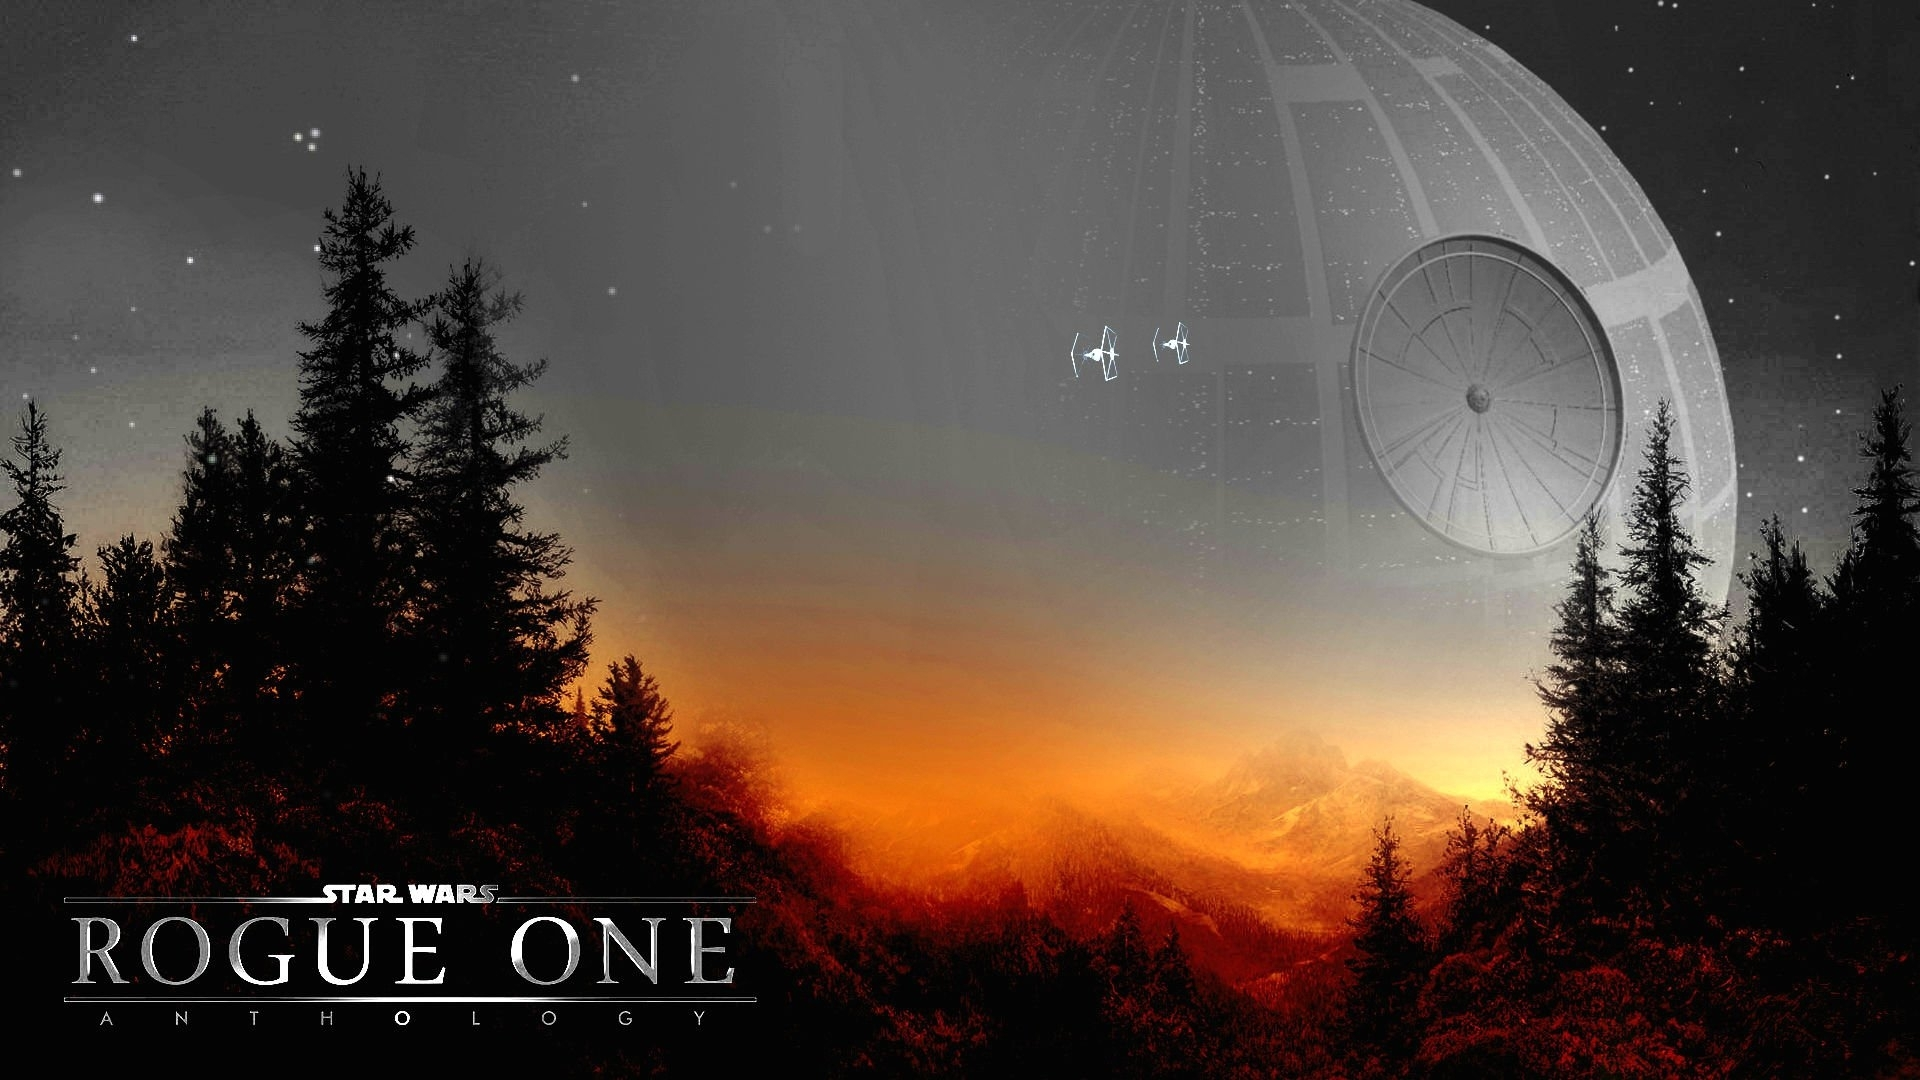 download the death star rogue one wallpaper, death star rogue one